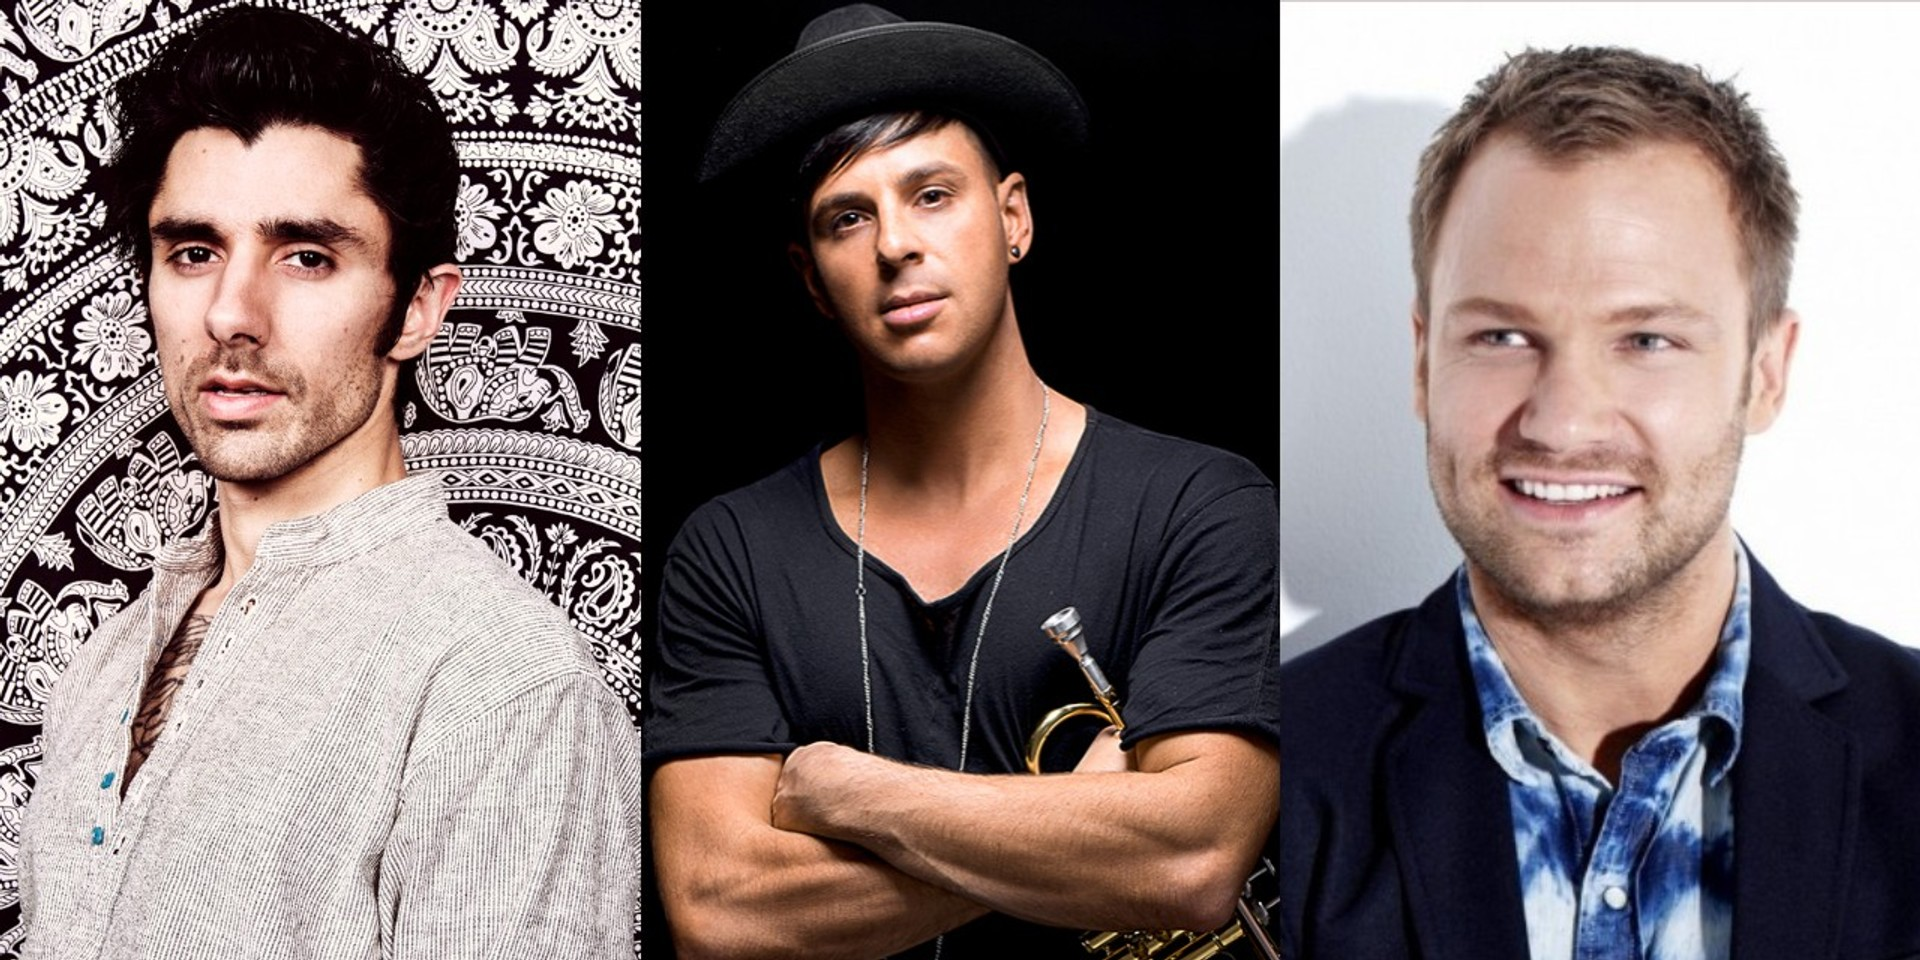 BREAKING: ZoukOut announces complete line-up – KSHMR, Timmy Trumpet and more added to final bill